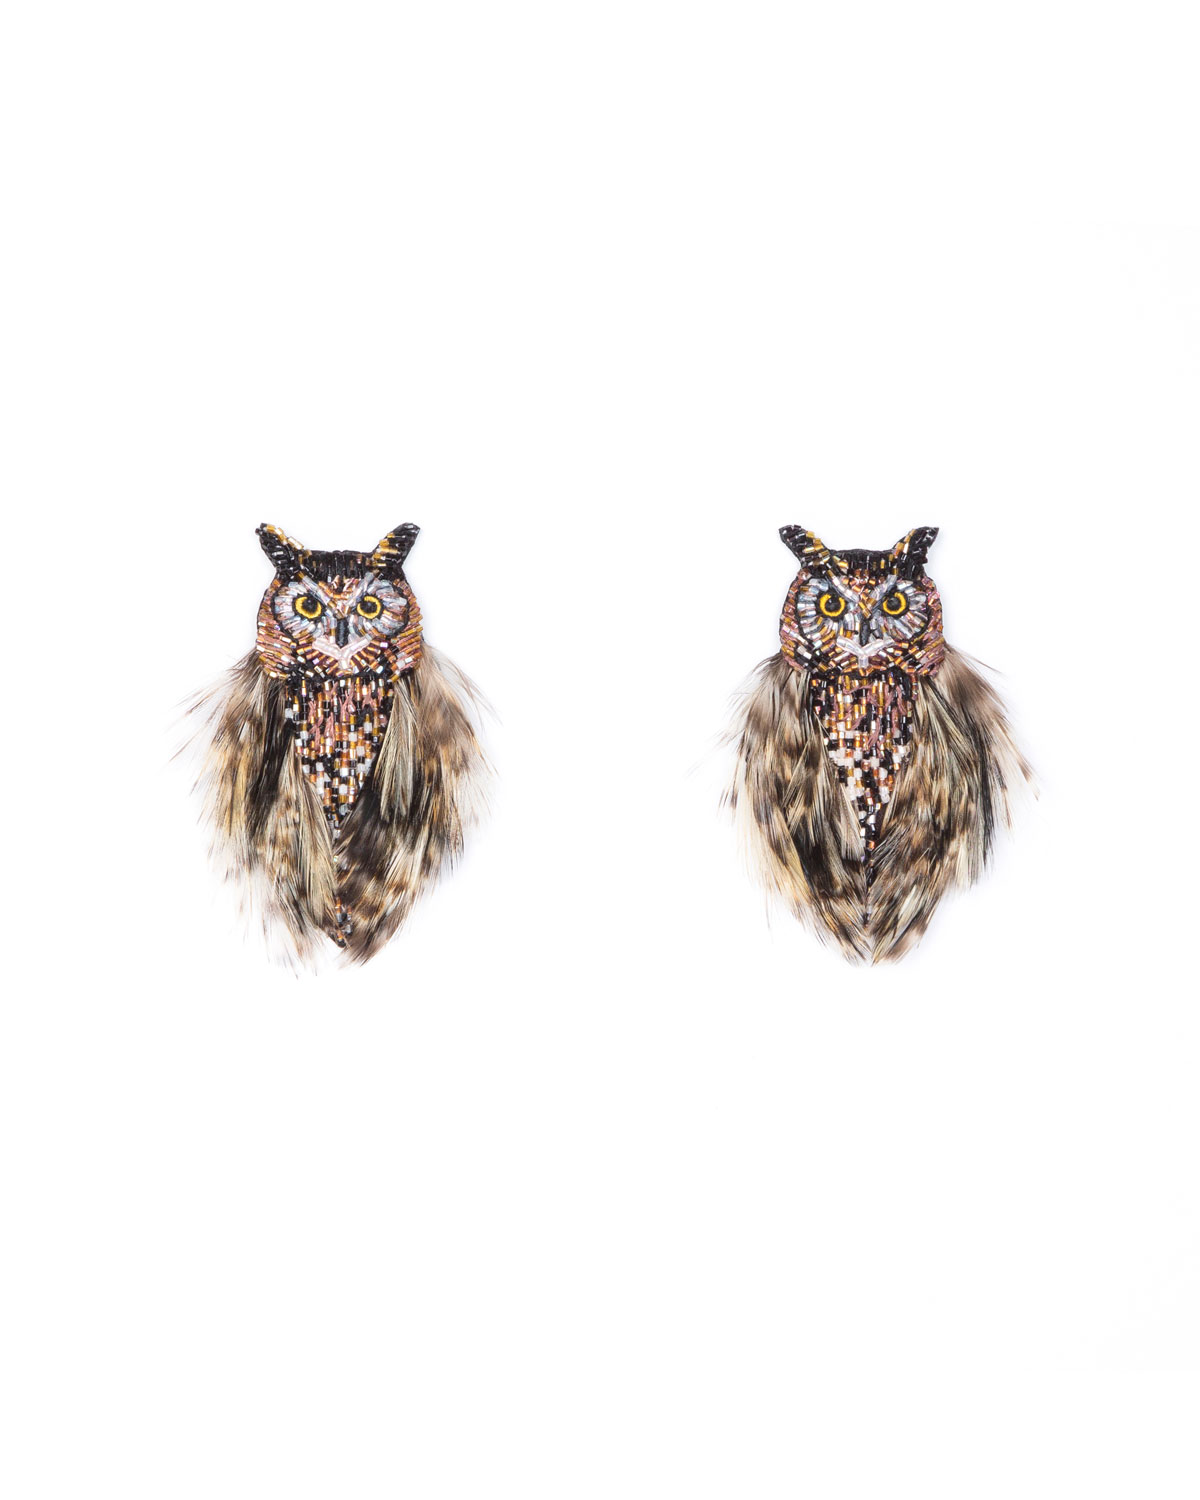 Mignonne Gavigan OWL BEAD & FEATHER EARRINGS